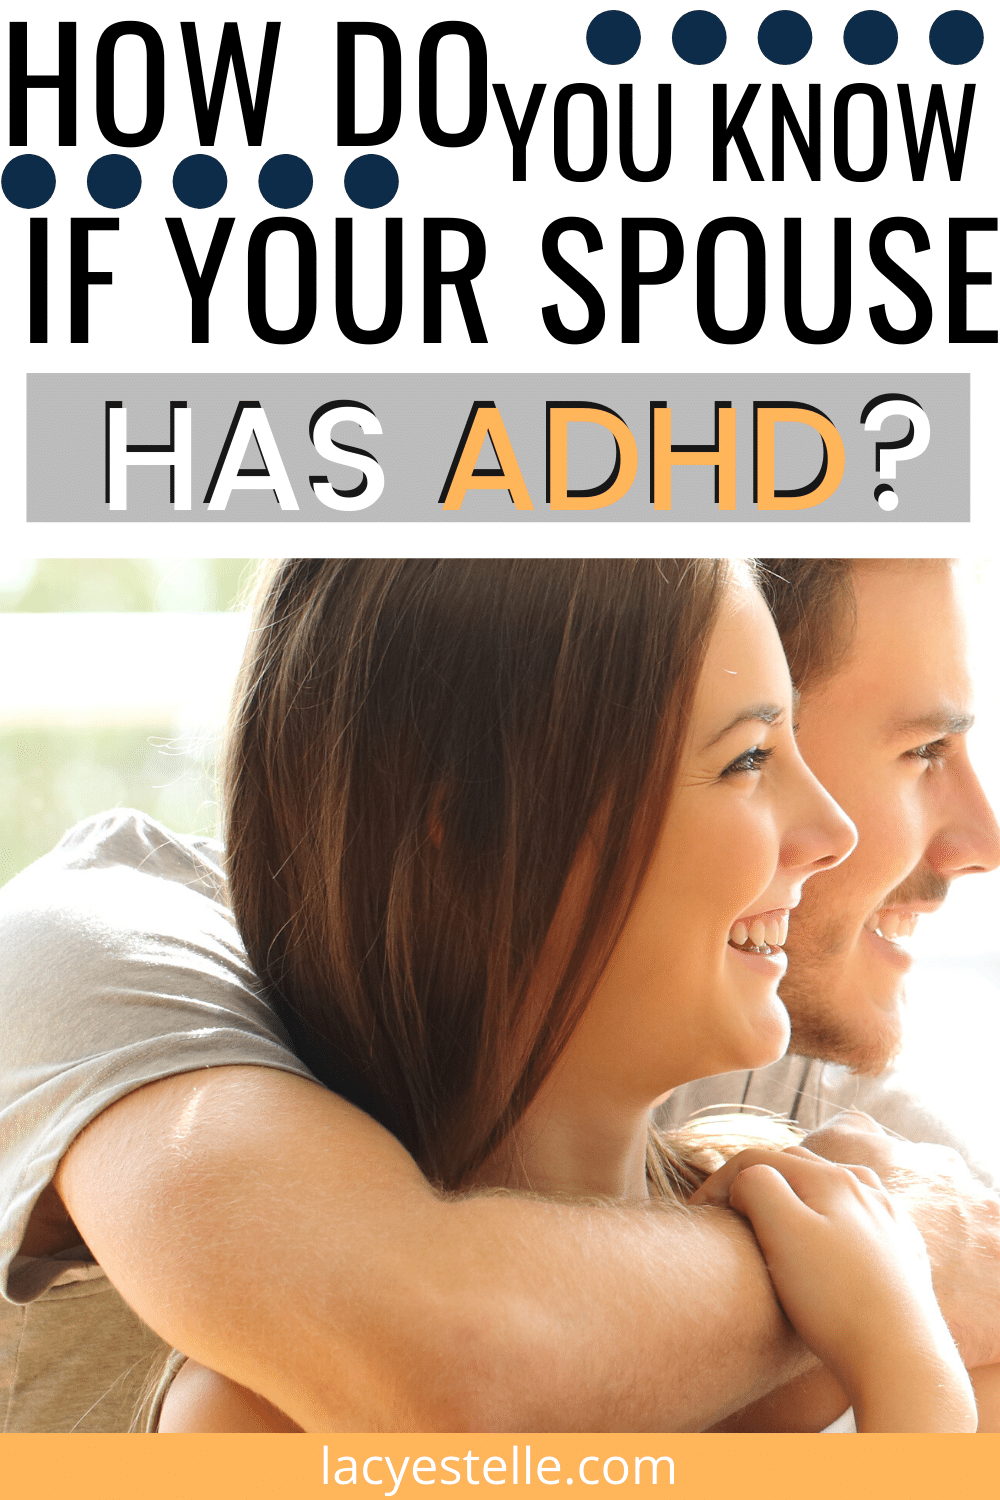 How can you tell if your spouse has ADHD? What are the signs of ADHD in adults? Will my spouses ADHD effect our marriage?